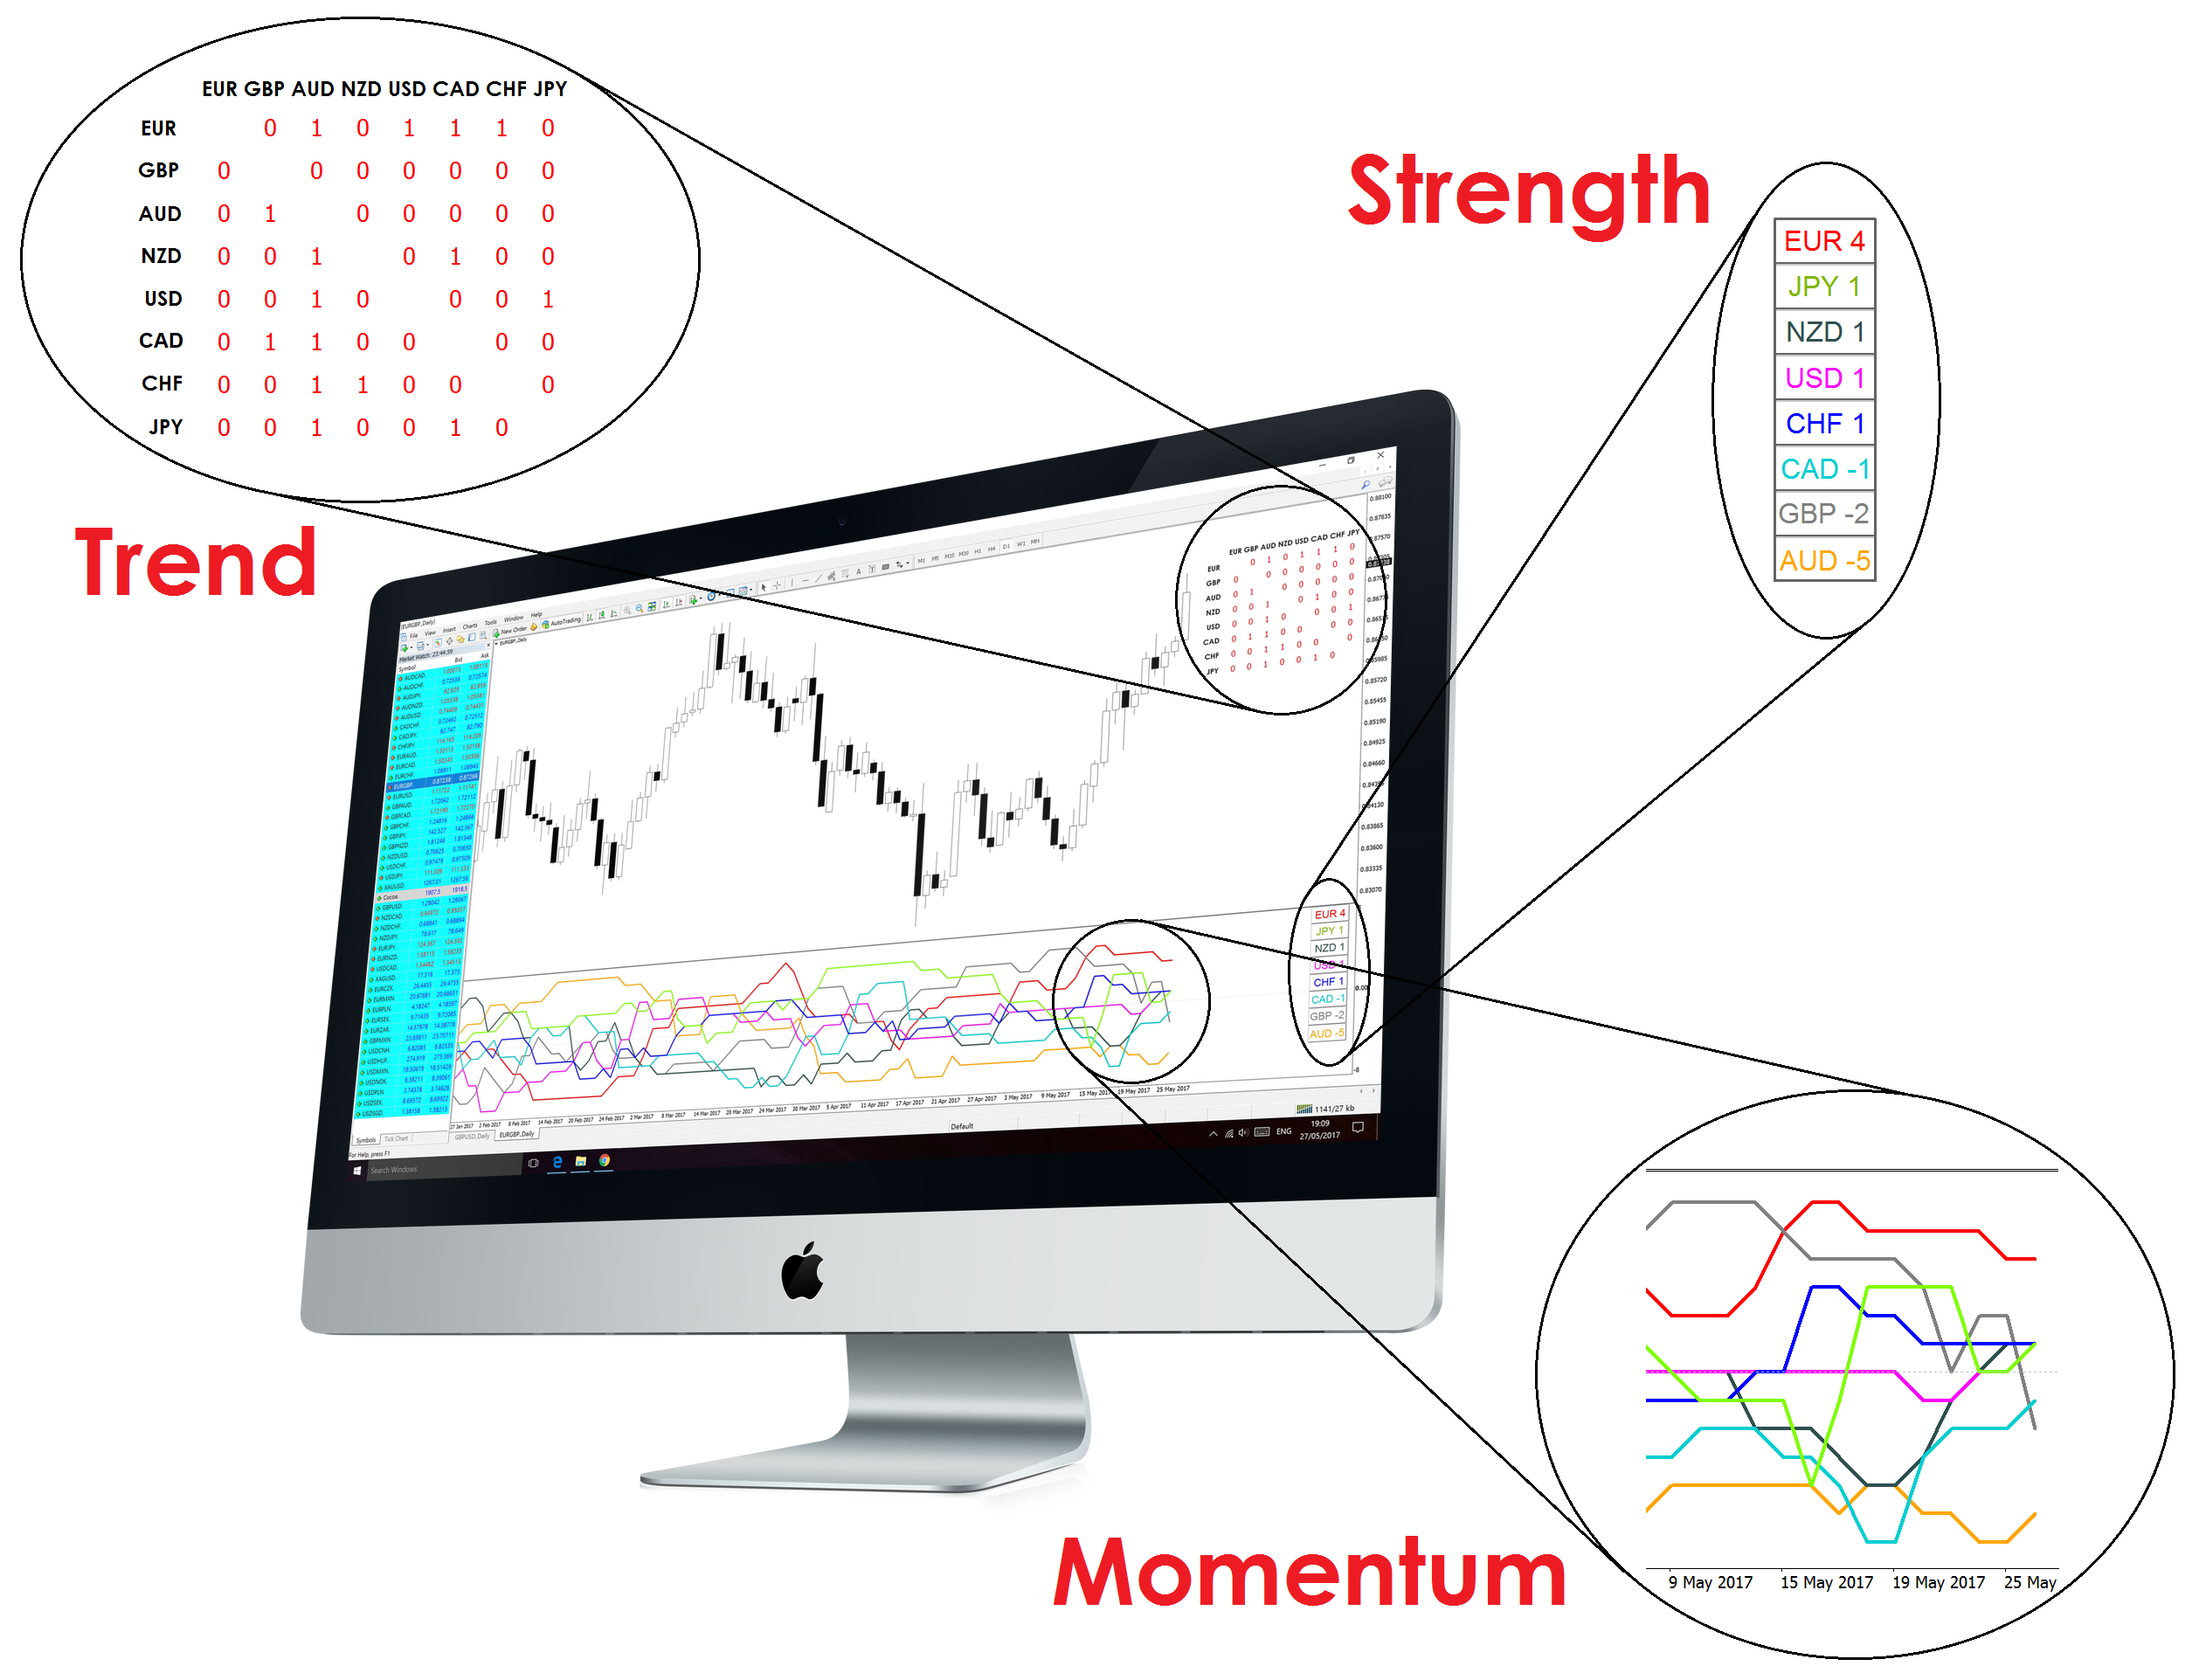 Trade forex trends, strength and momentum using Currency Strength Matrix indicator available on Metatrader 4